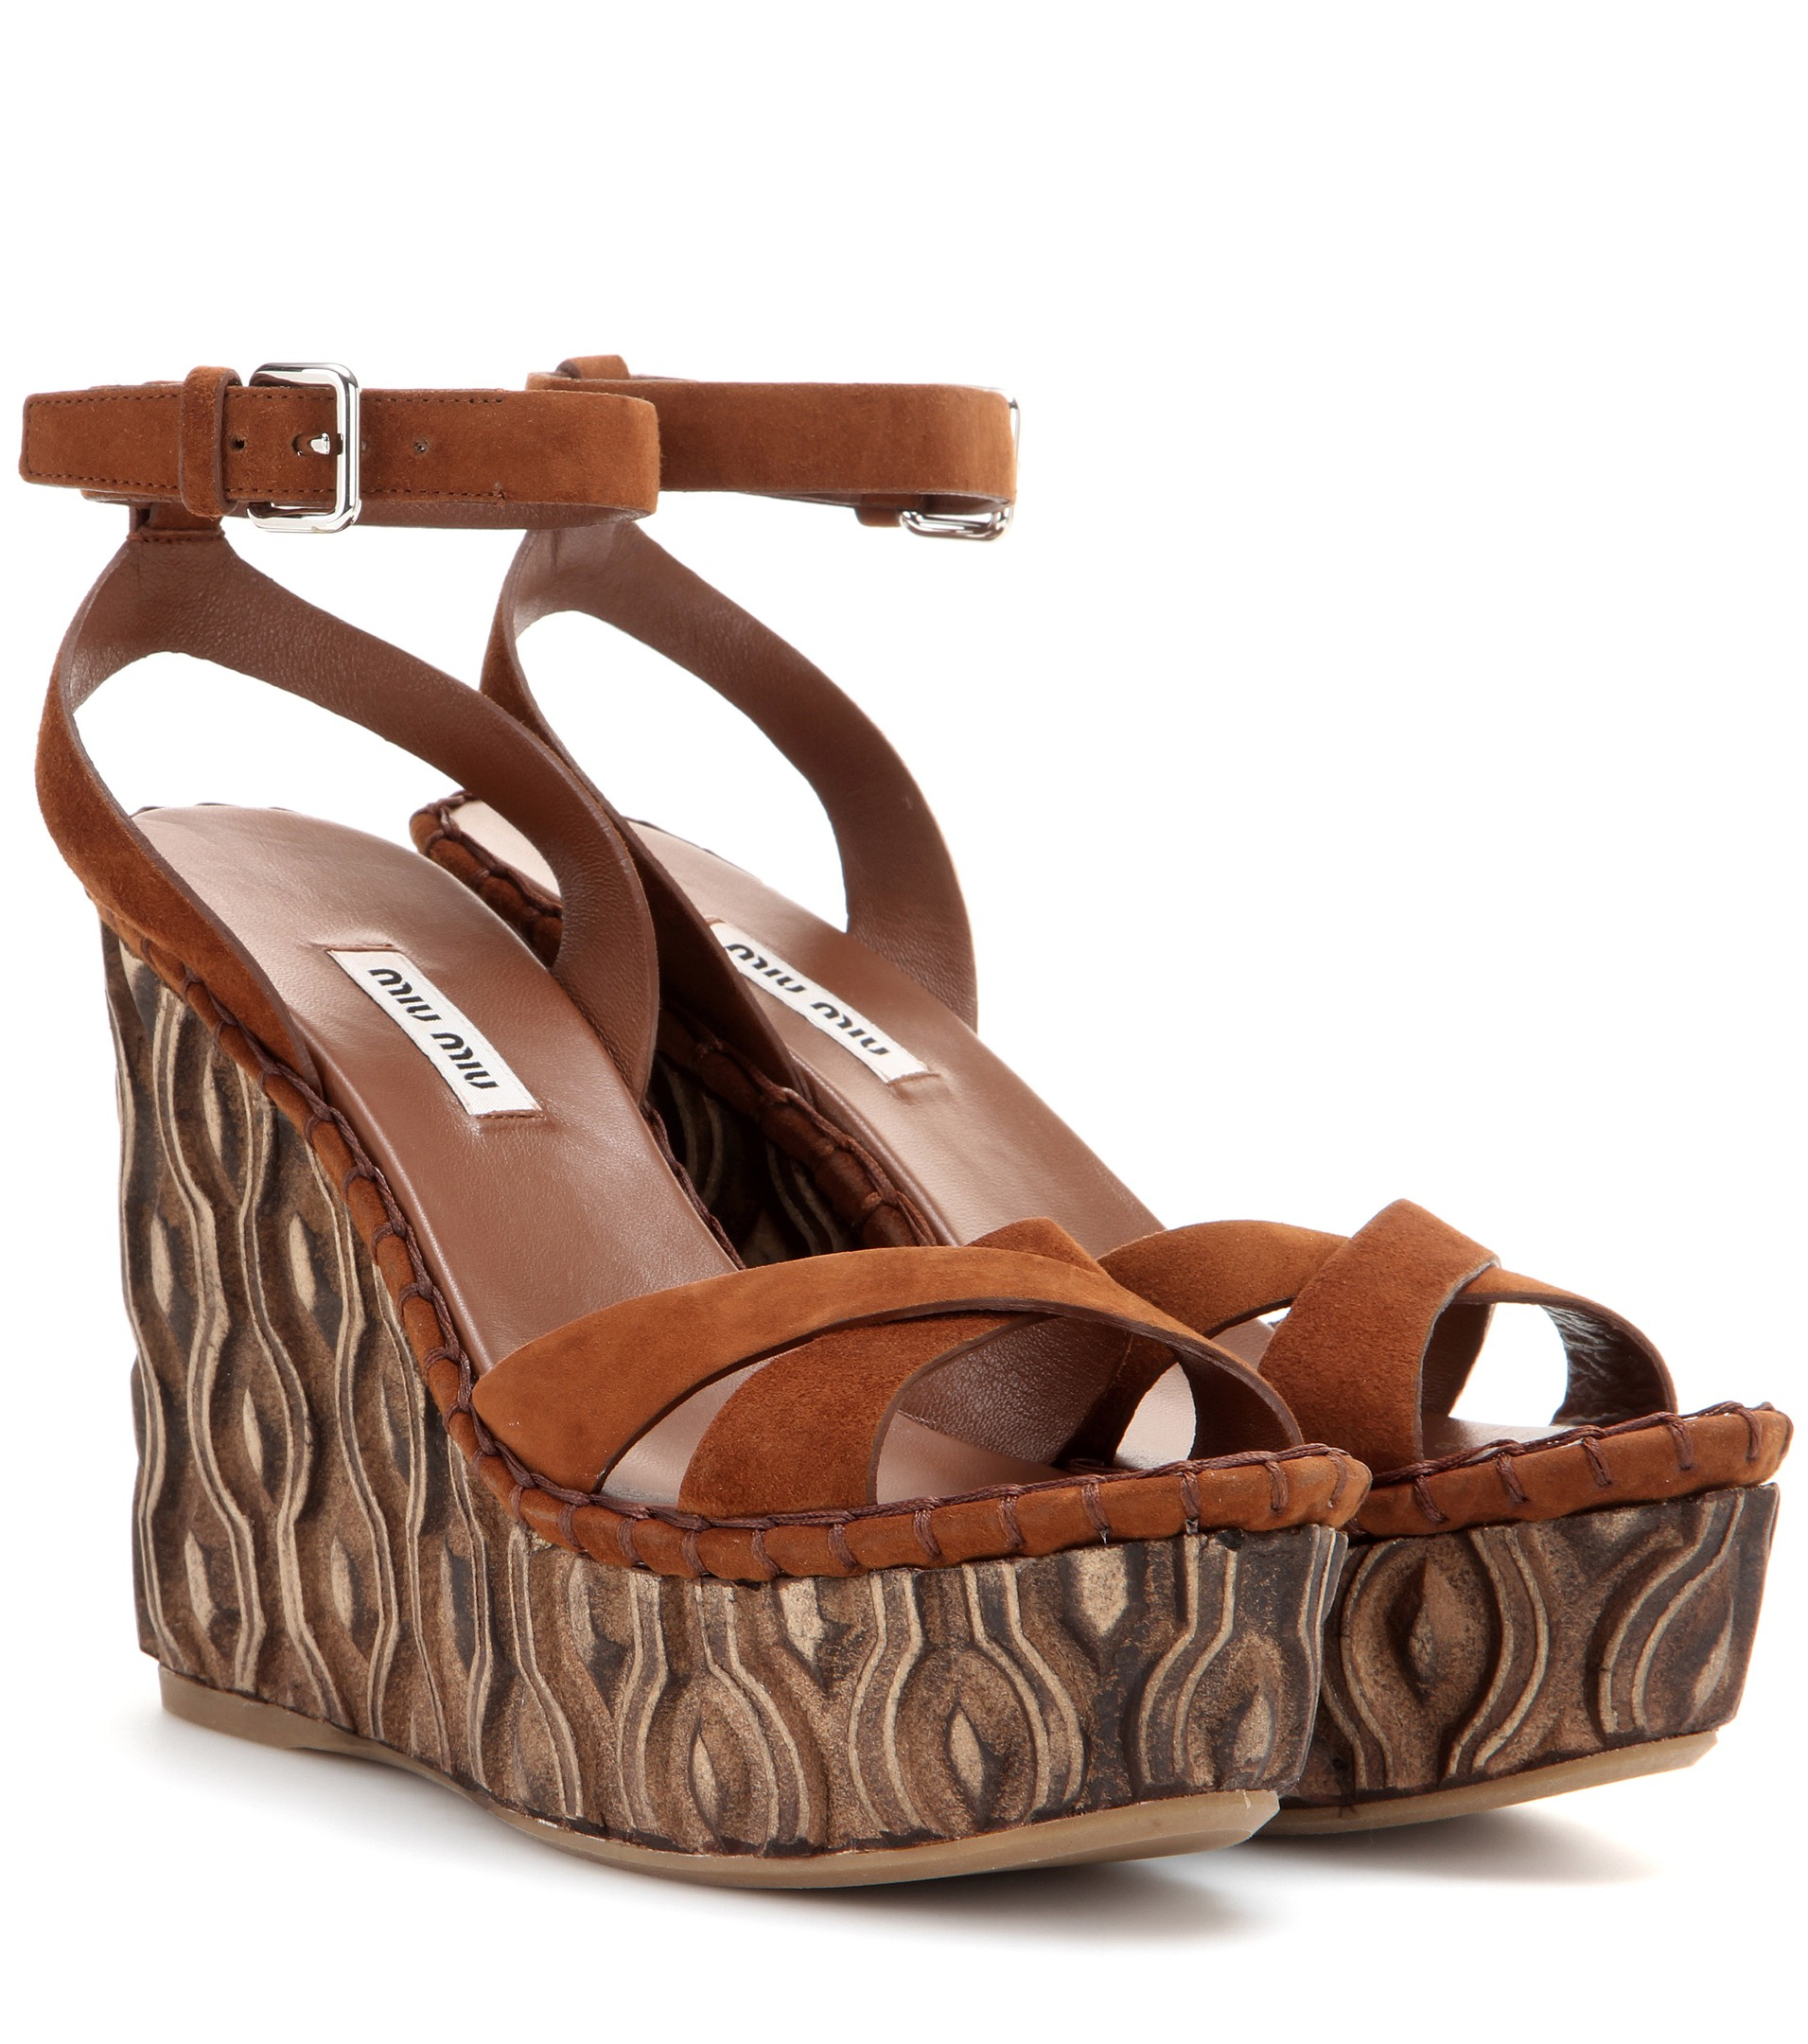 Lyst Miu Miu Suede Platform Wedge Sandals In Brown